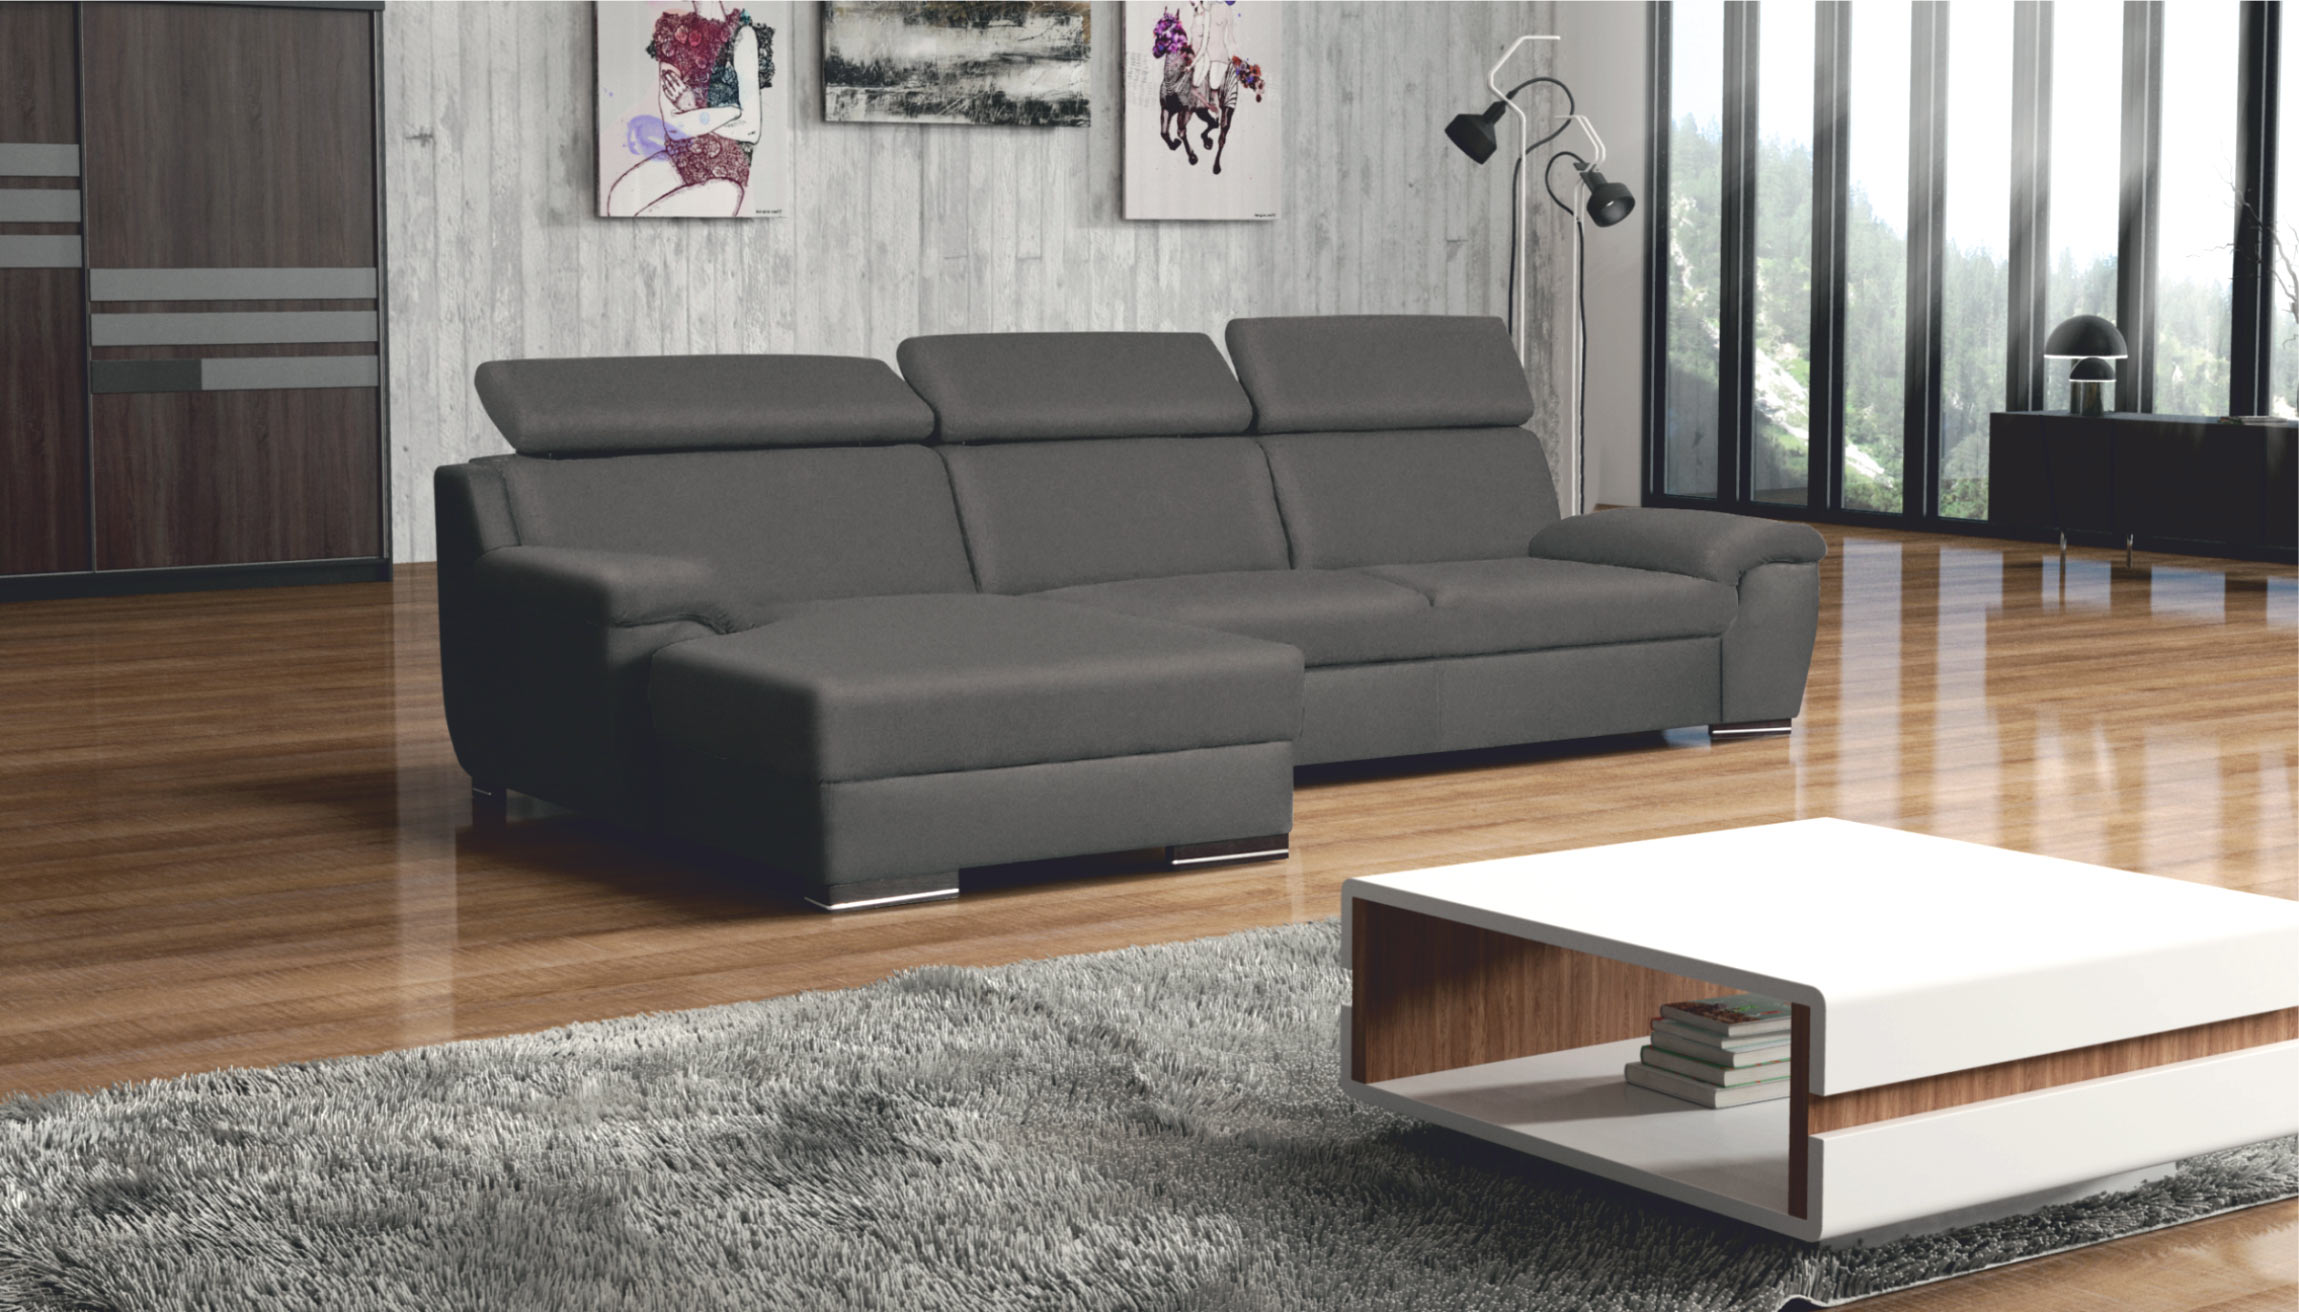 Deluxe Gray Sectional Sofa by Skyler Designs